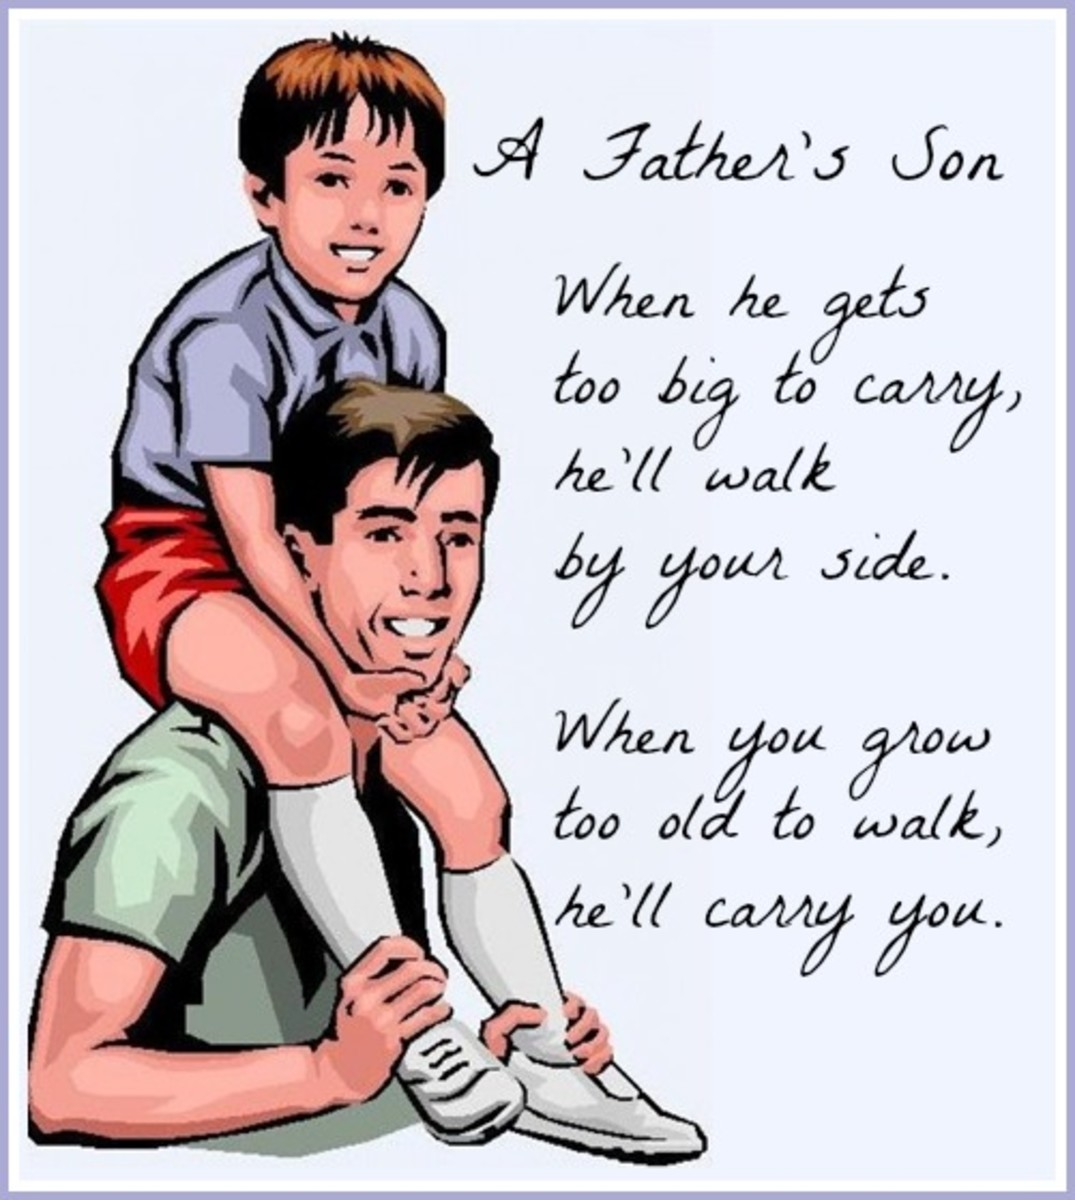 Father's Day Message about Fathers and Sons